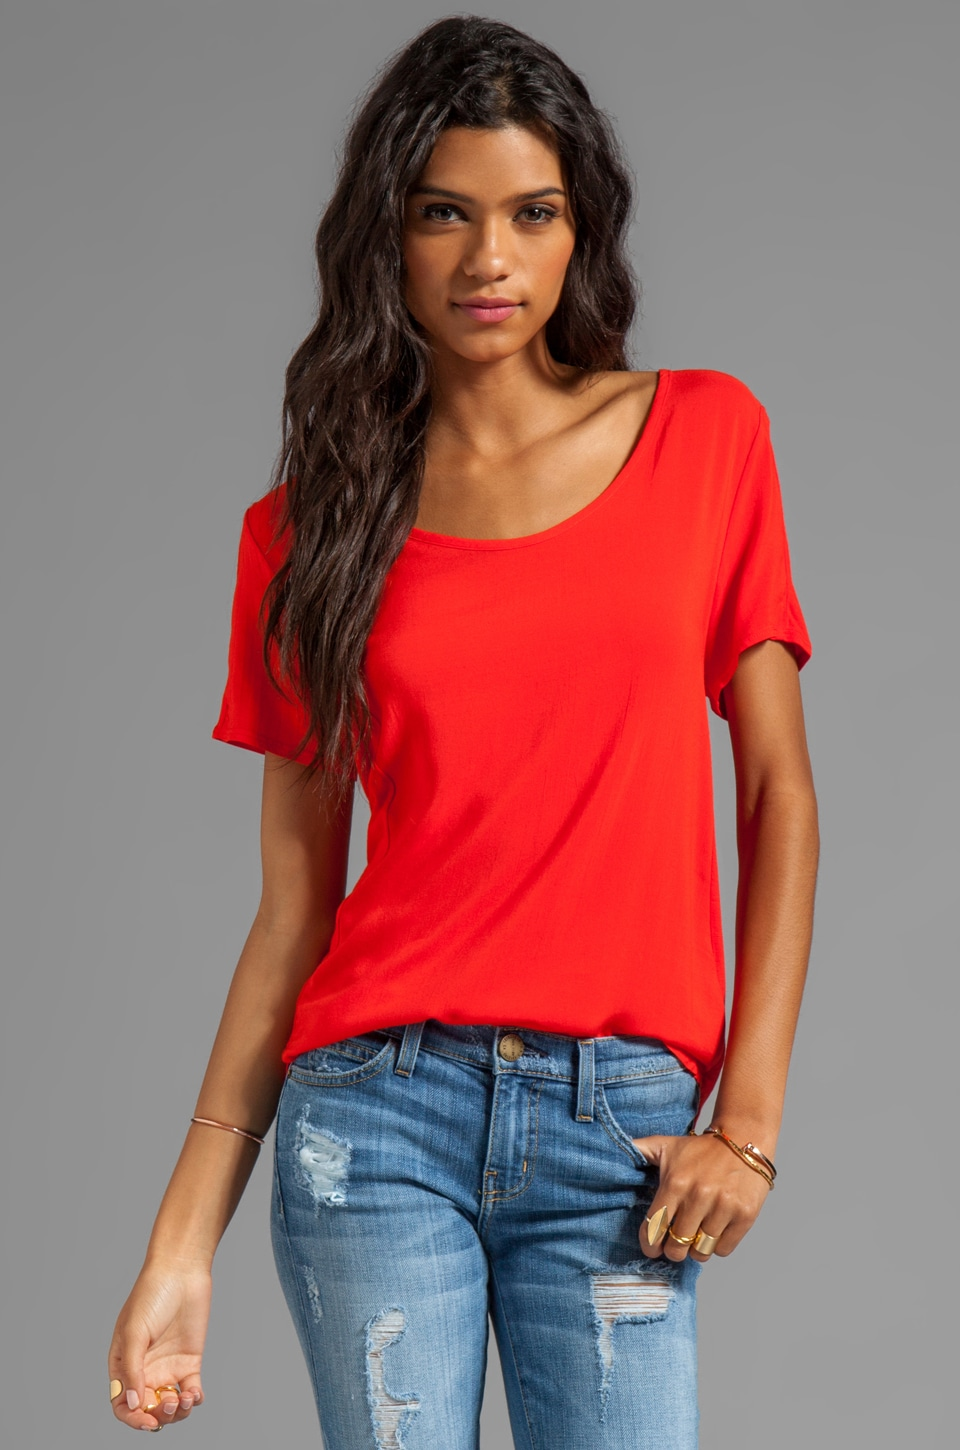 C&C California Woven/Knit Mix Short Sleeve Shirt Tail Top in Solar Red